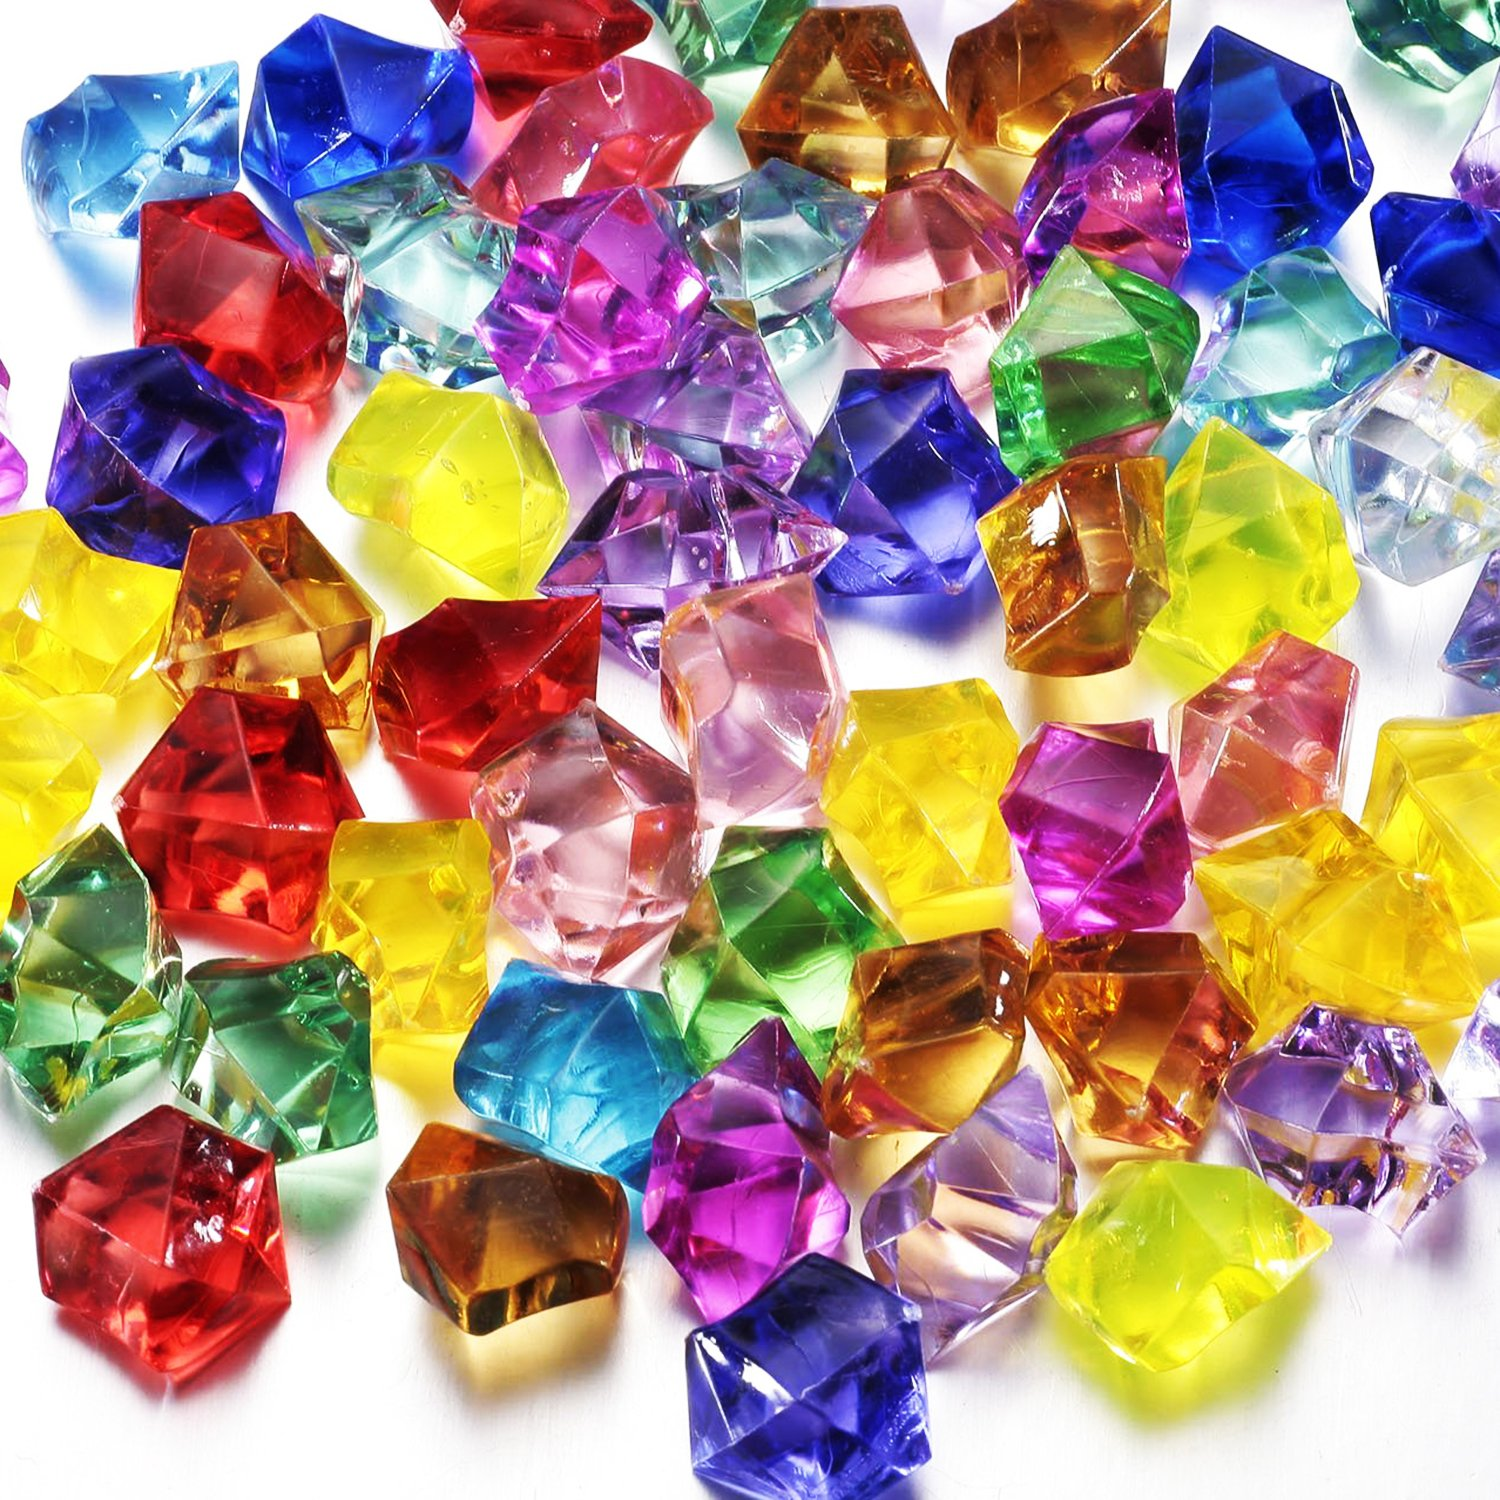 Multi-Colored Acrylic Diamonds Pirate Treasure Jewels for Costume Stage Props, Party Decoration,Wedding and Vase Fillers-30 Pcs Angel&Love